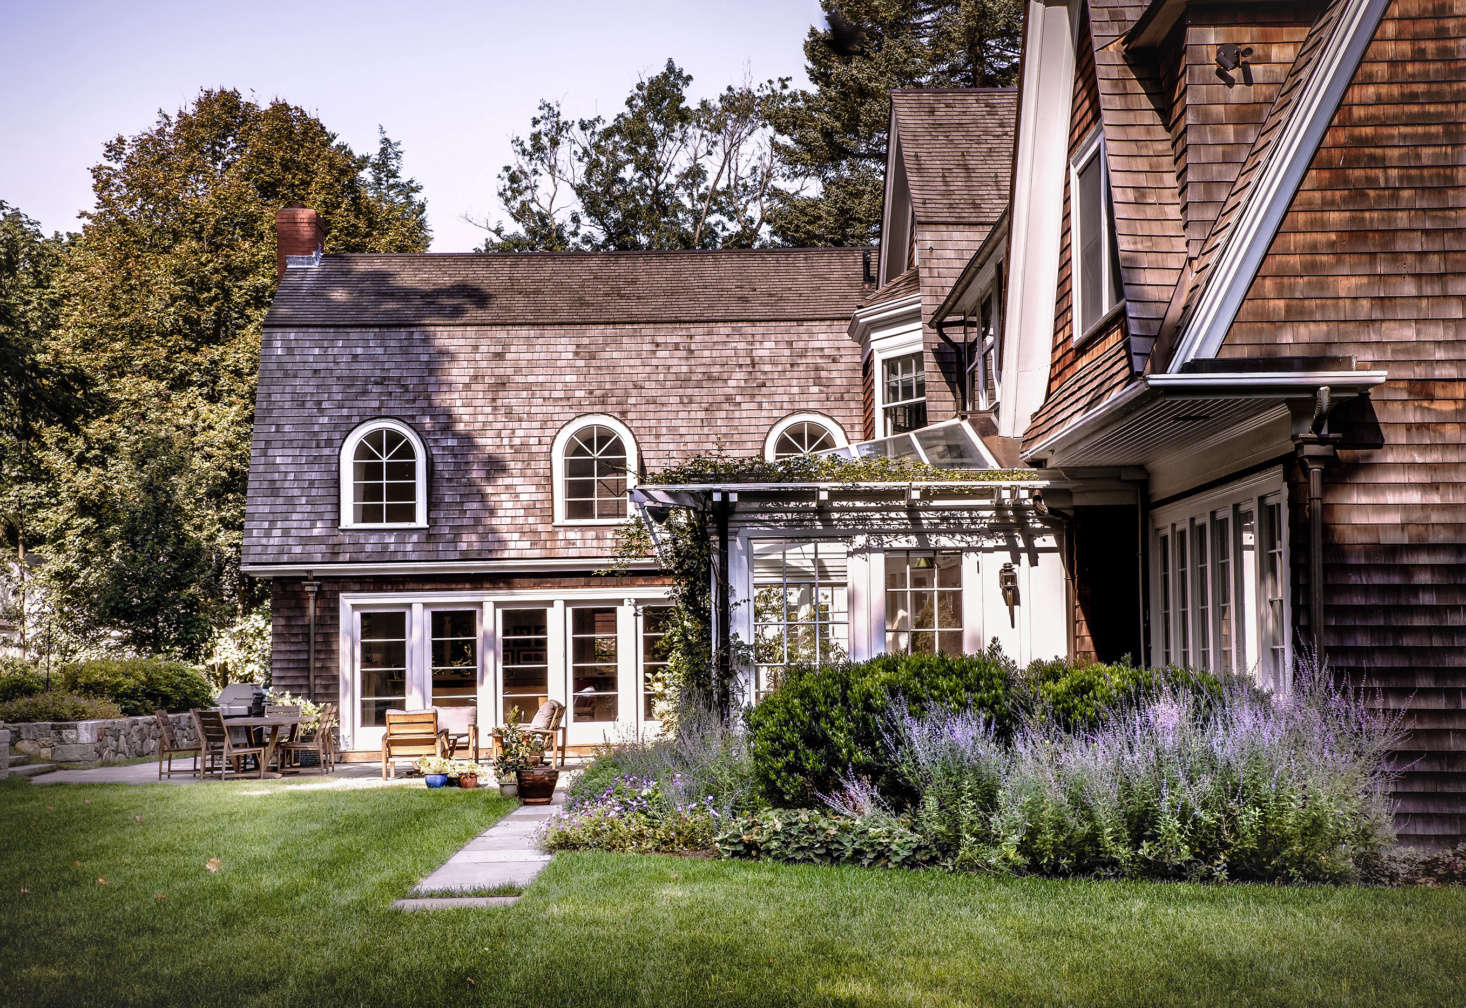 Adjacent to the house, a sheltered bluestone patio provides the main outdoor eating and entertaining area.